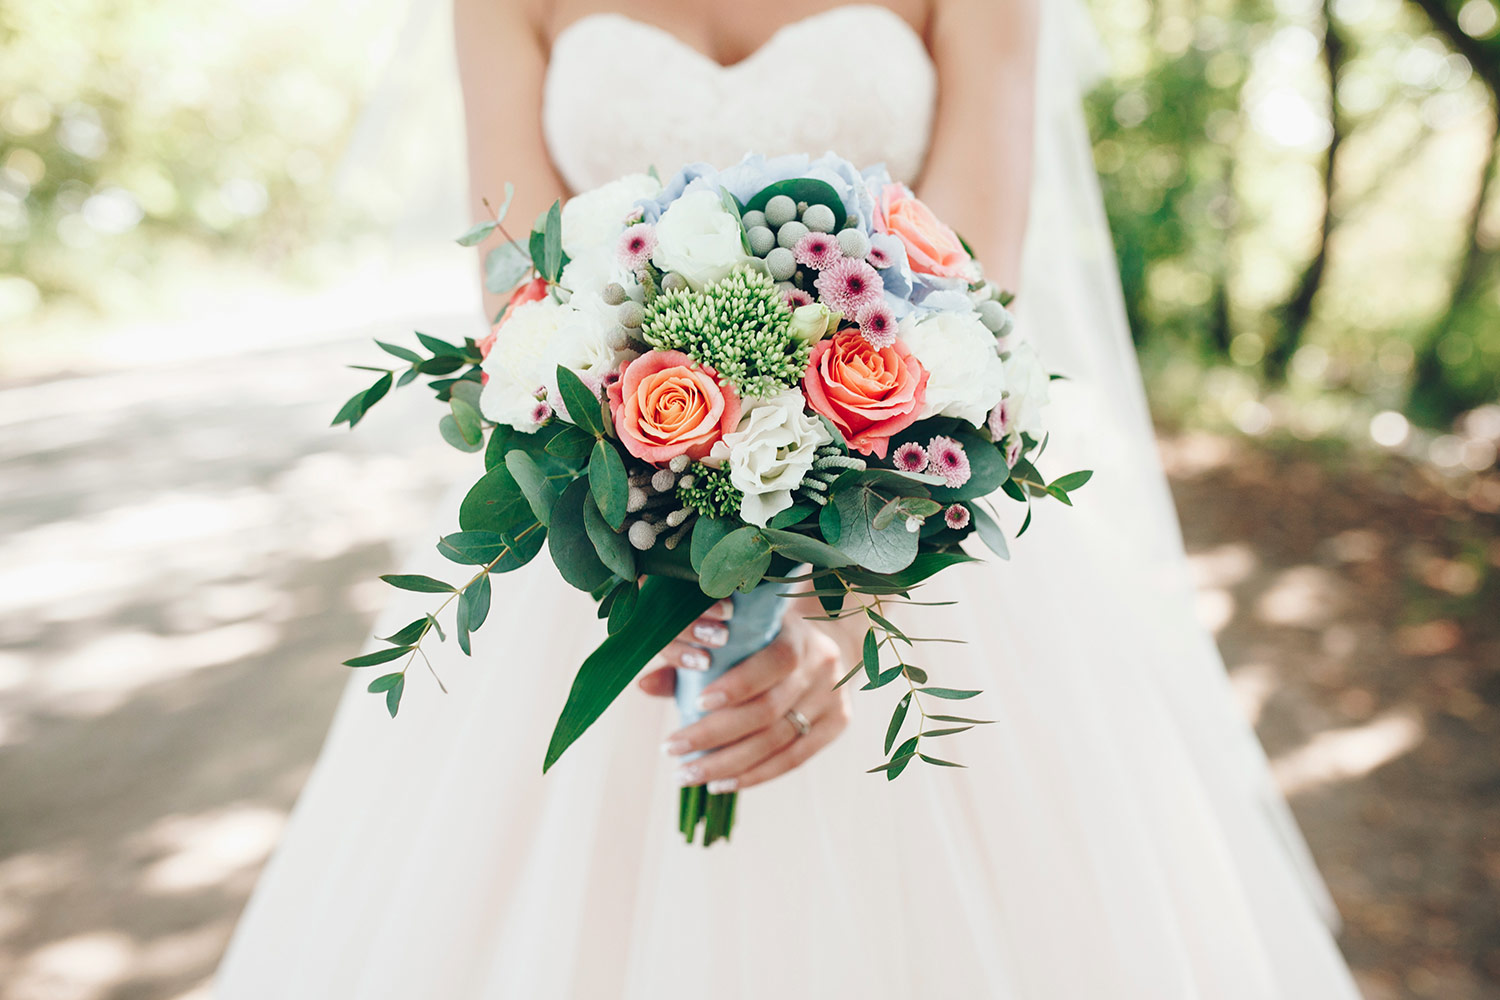 Most Popular Wedding Flower Arrangements and Trends of 2018